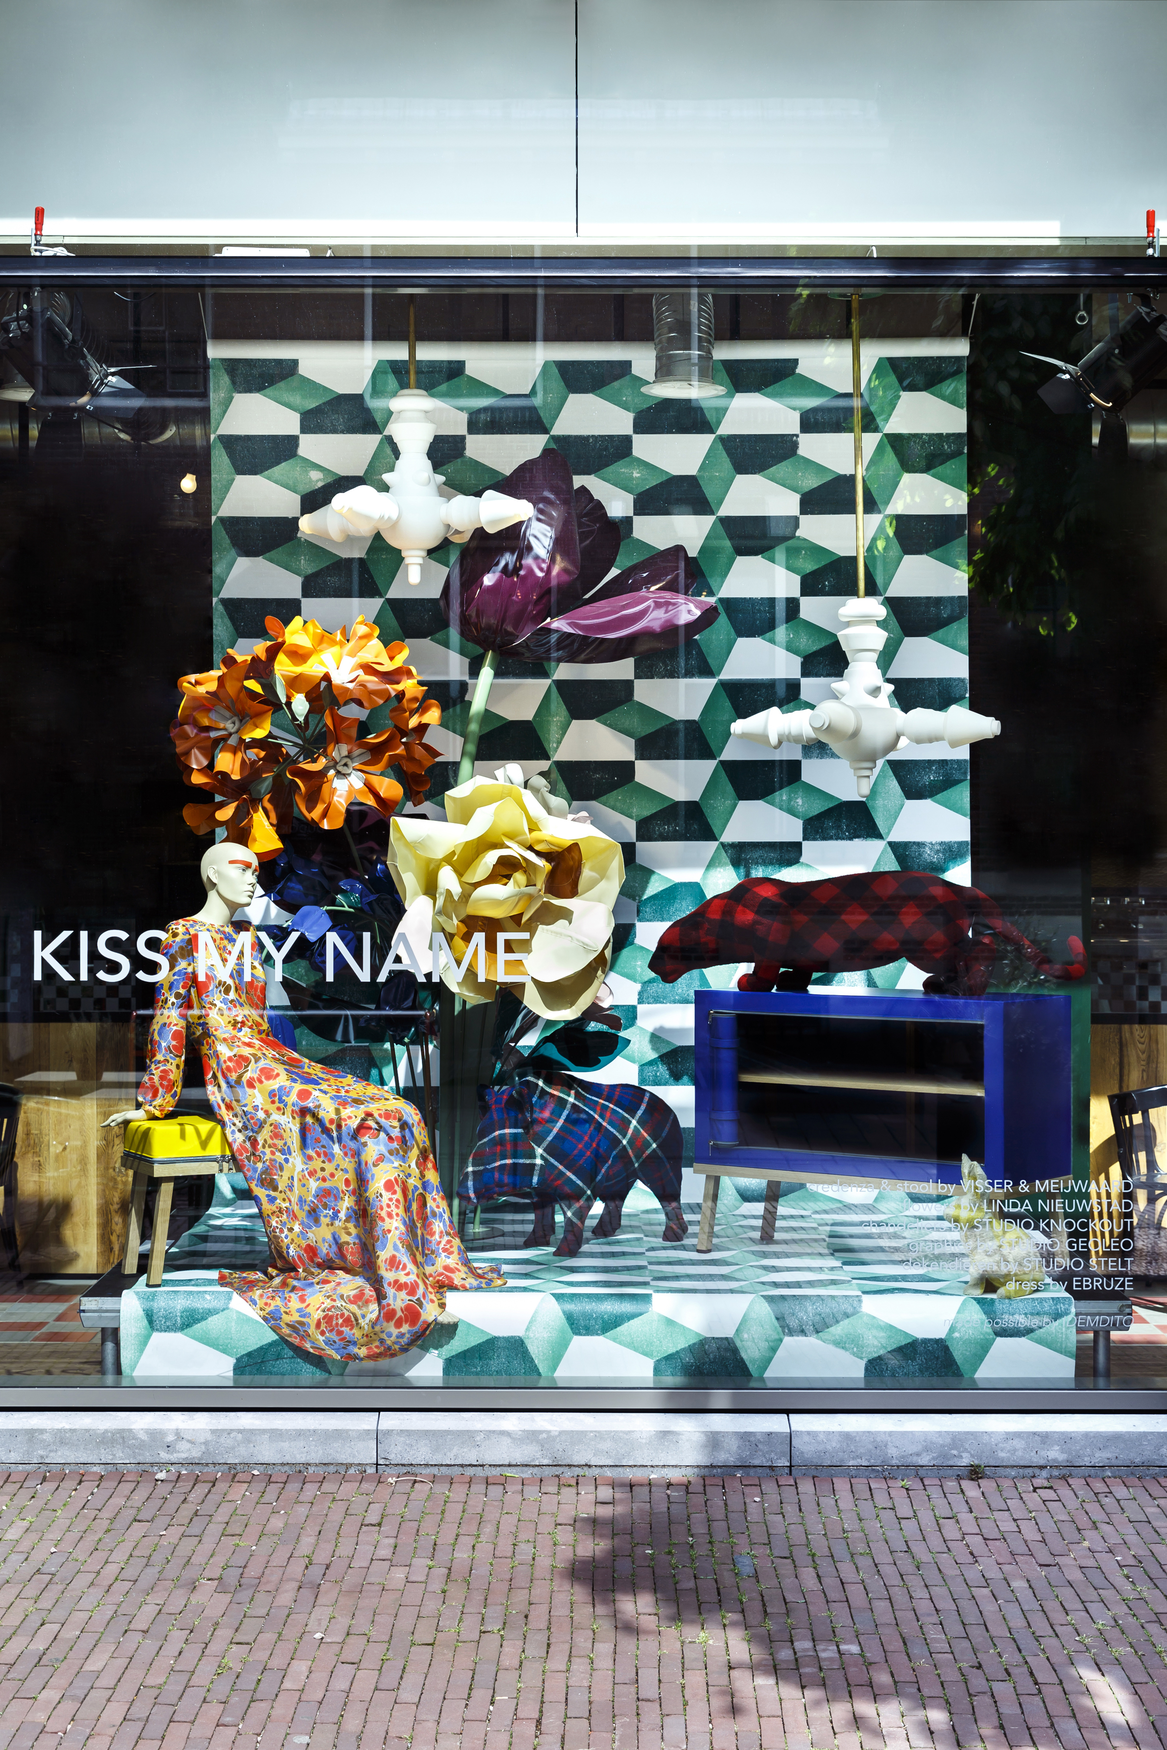 Visser Meijwaard Dutch Design Meubels Truecolors Presentatie Kiss My Name Photo Eva Broekema